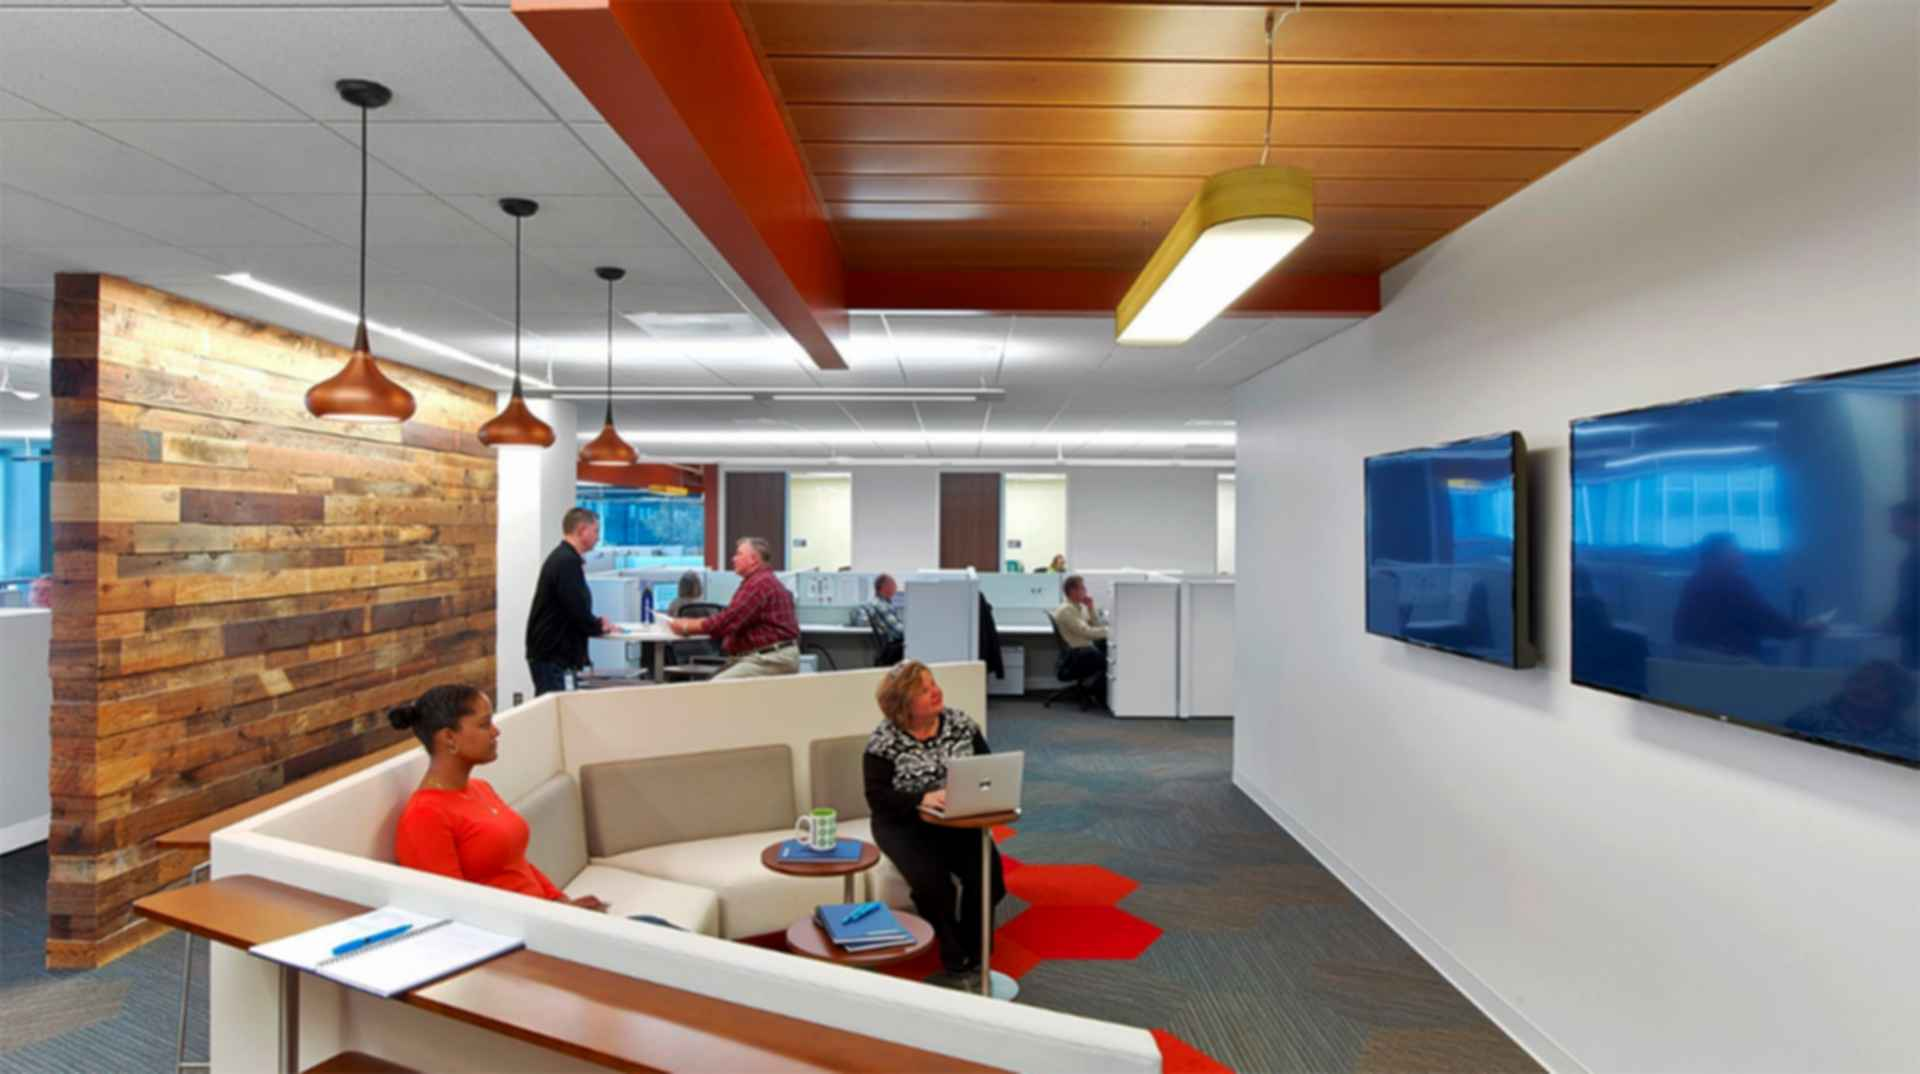 McKesson Healthcare - Interior